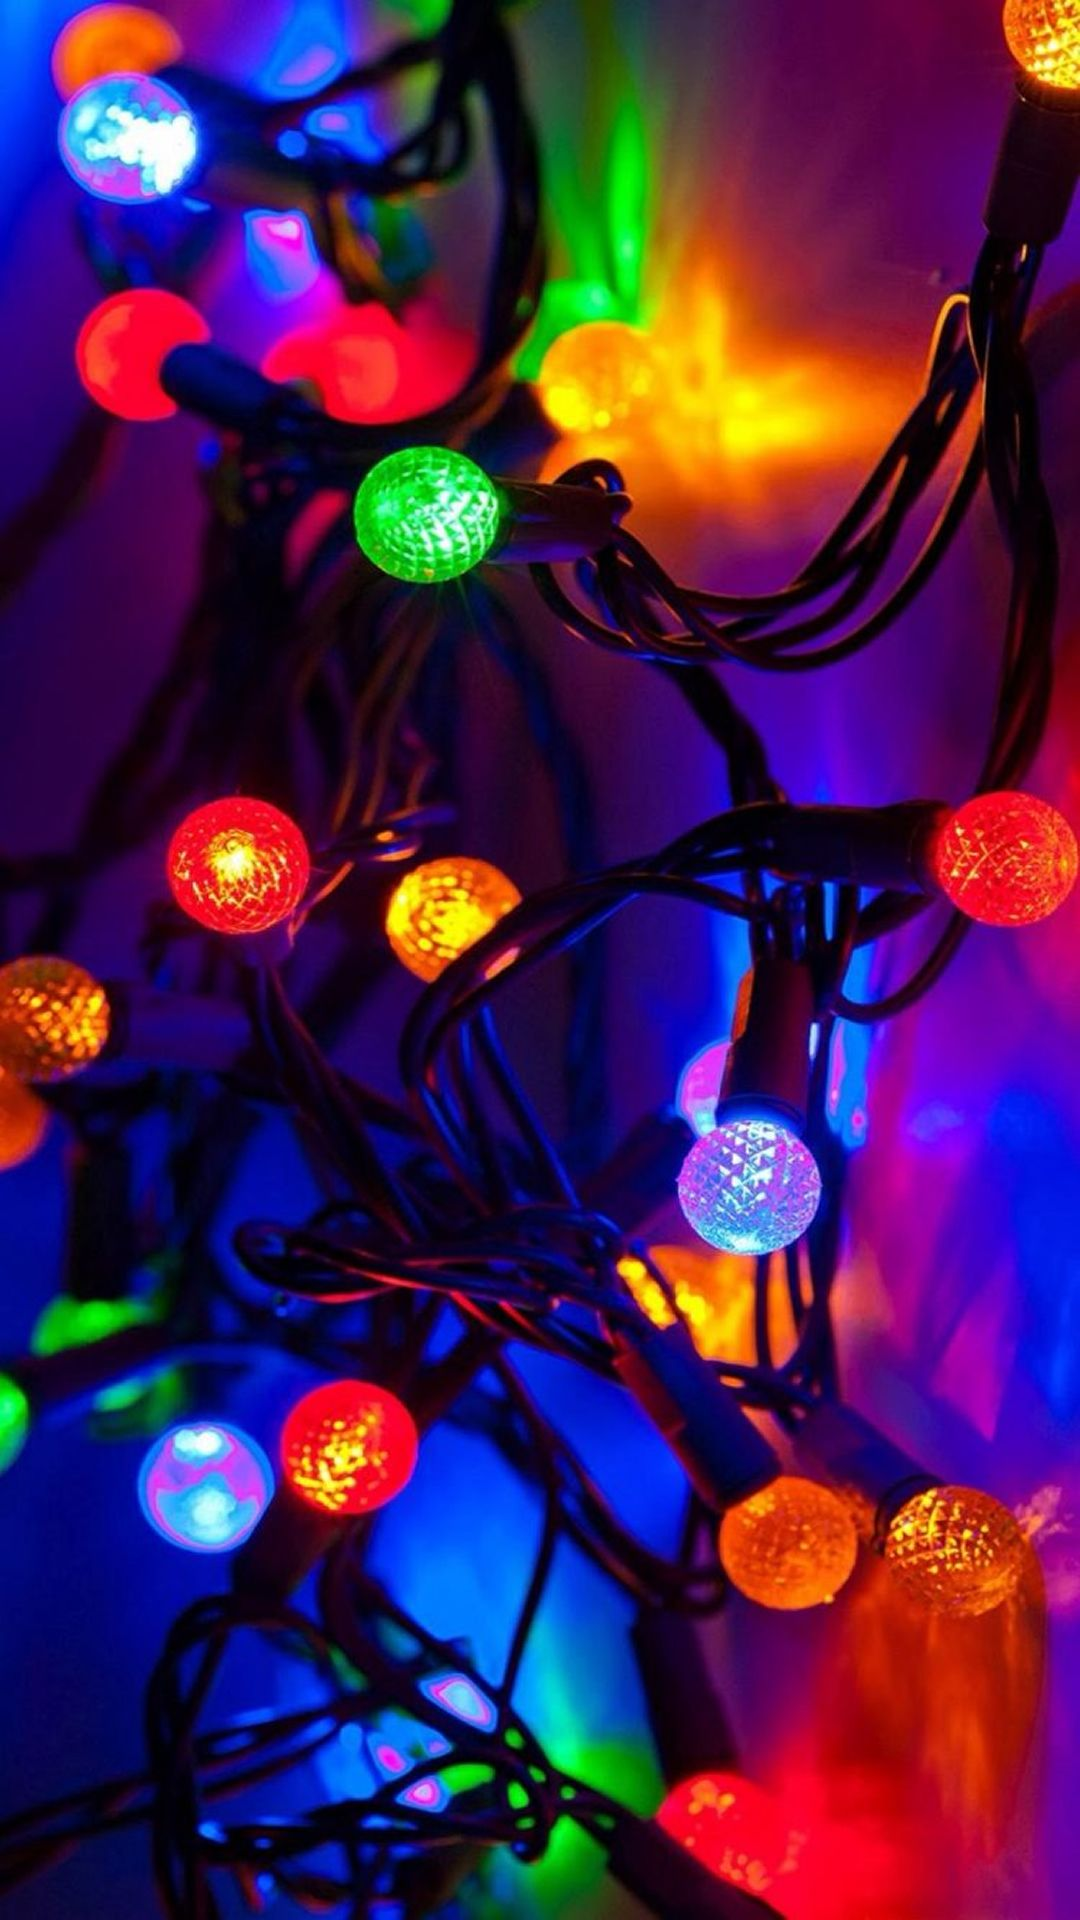 Pin By Zach Lesher On Iphone Wallpaper Christmas Lights